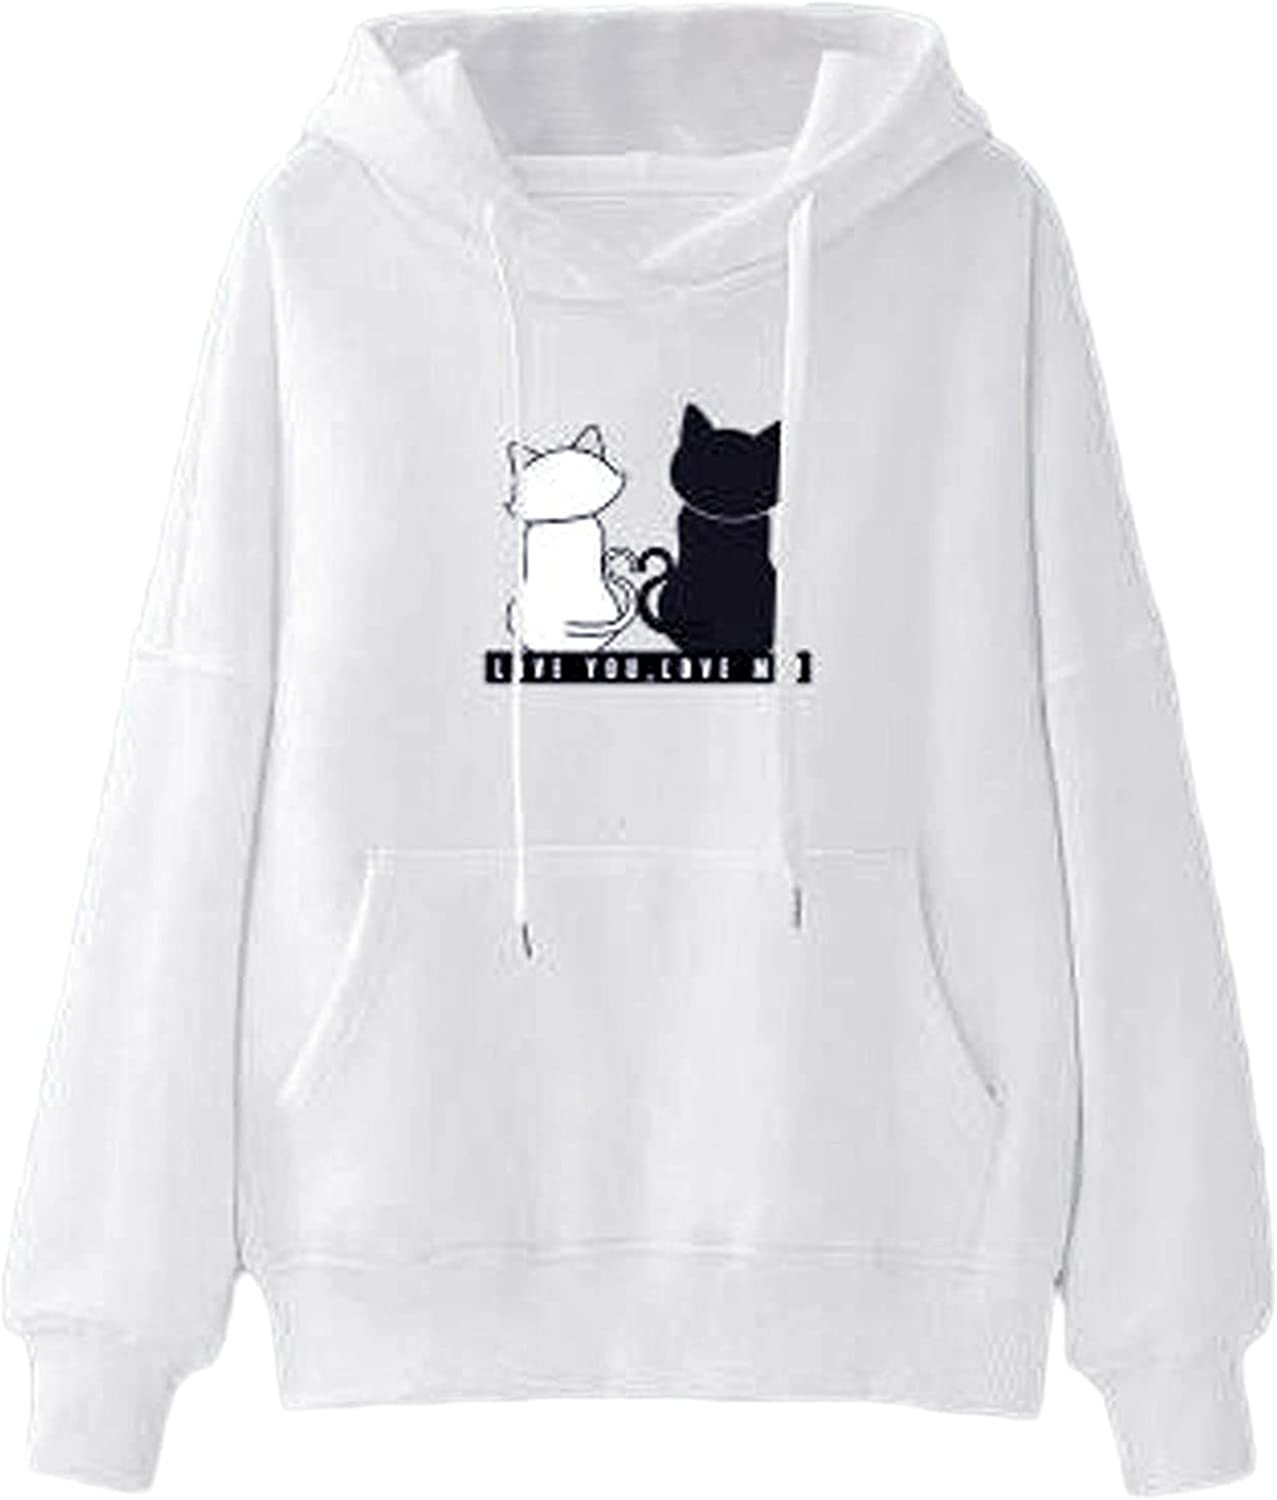 Women's Casual Cute At Cheap mail order specialty store the price Cartoon Animal Sleeve Pullover Ho Print Long